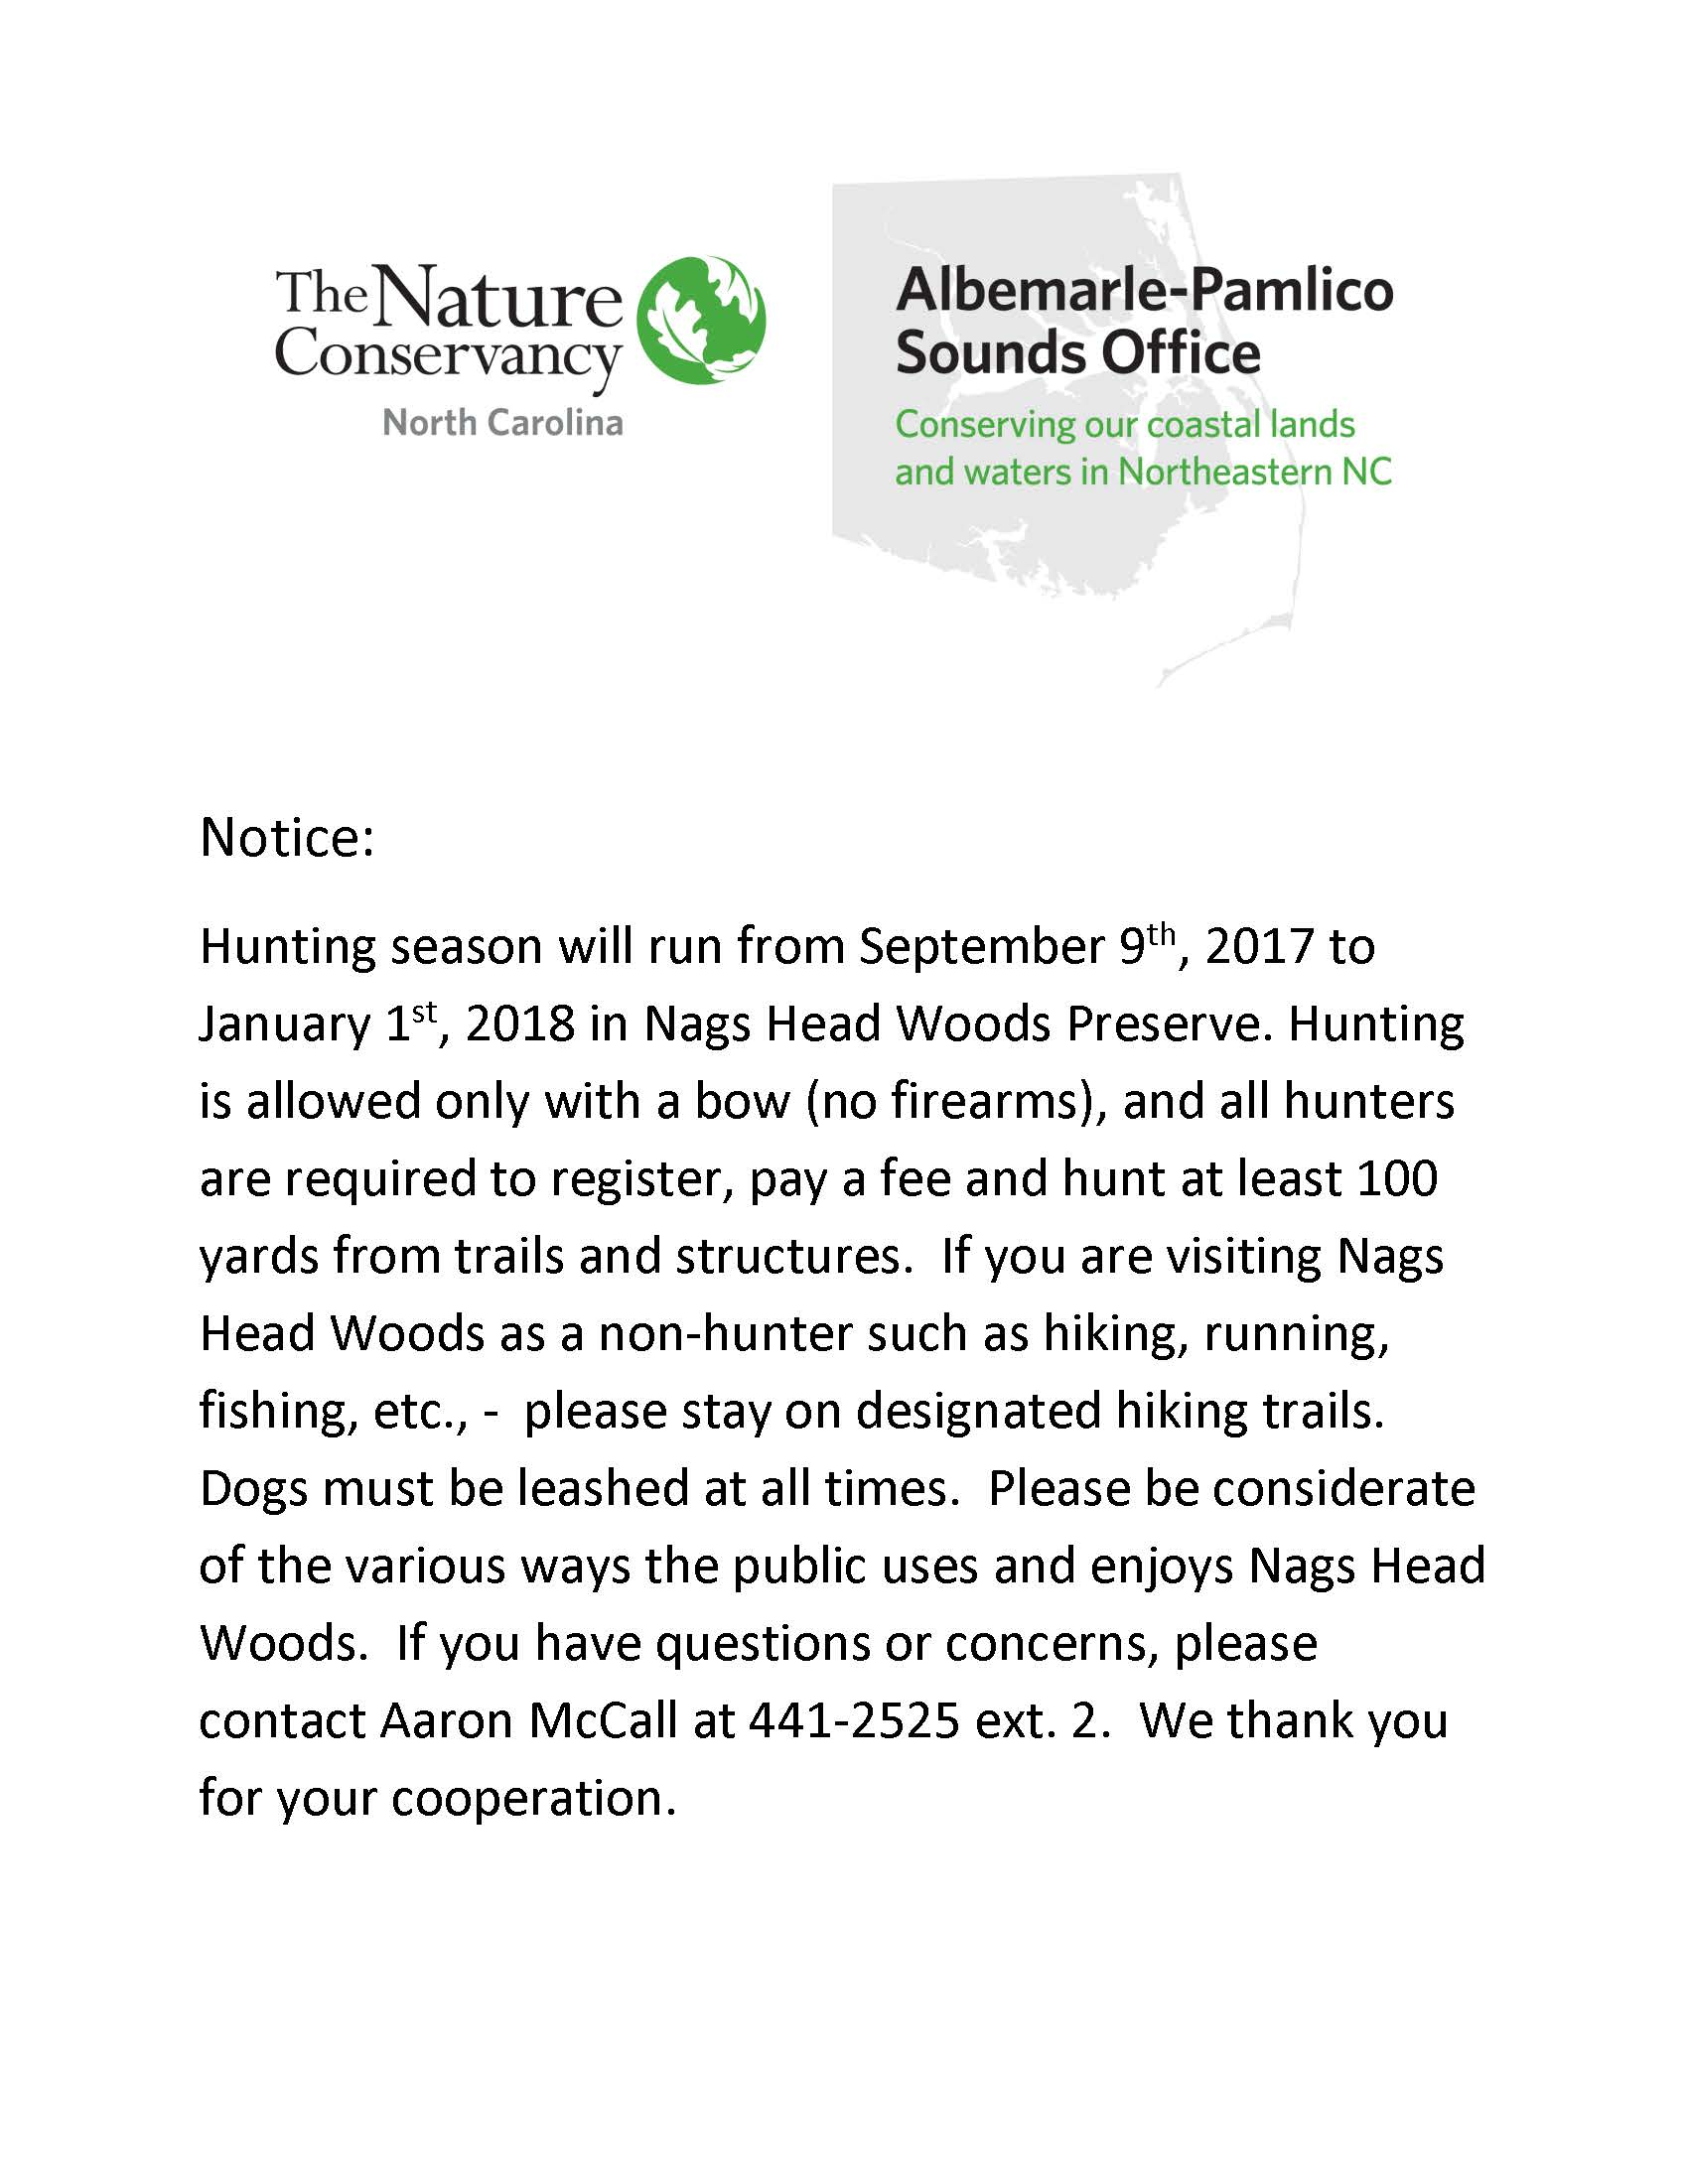 Hunting Notice 2017_